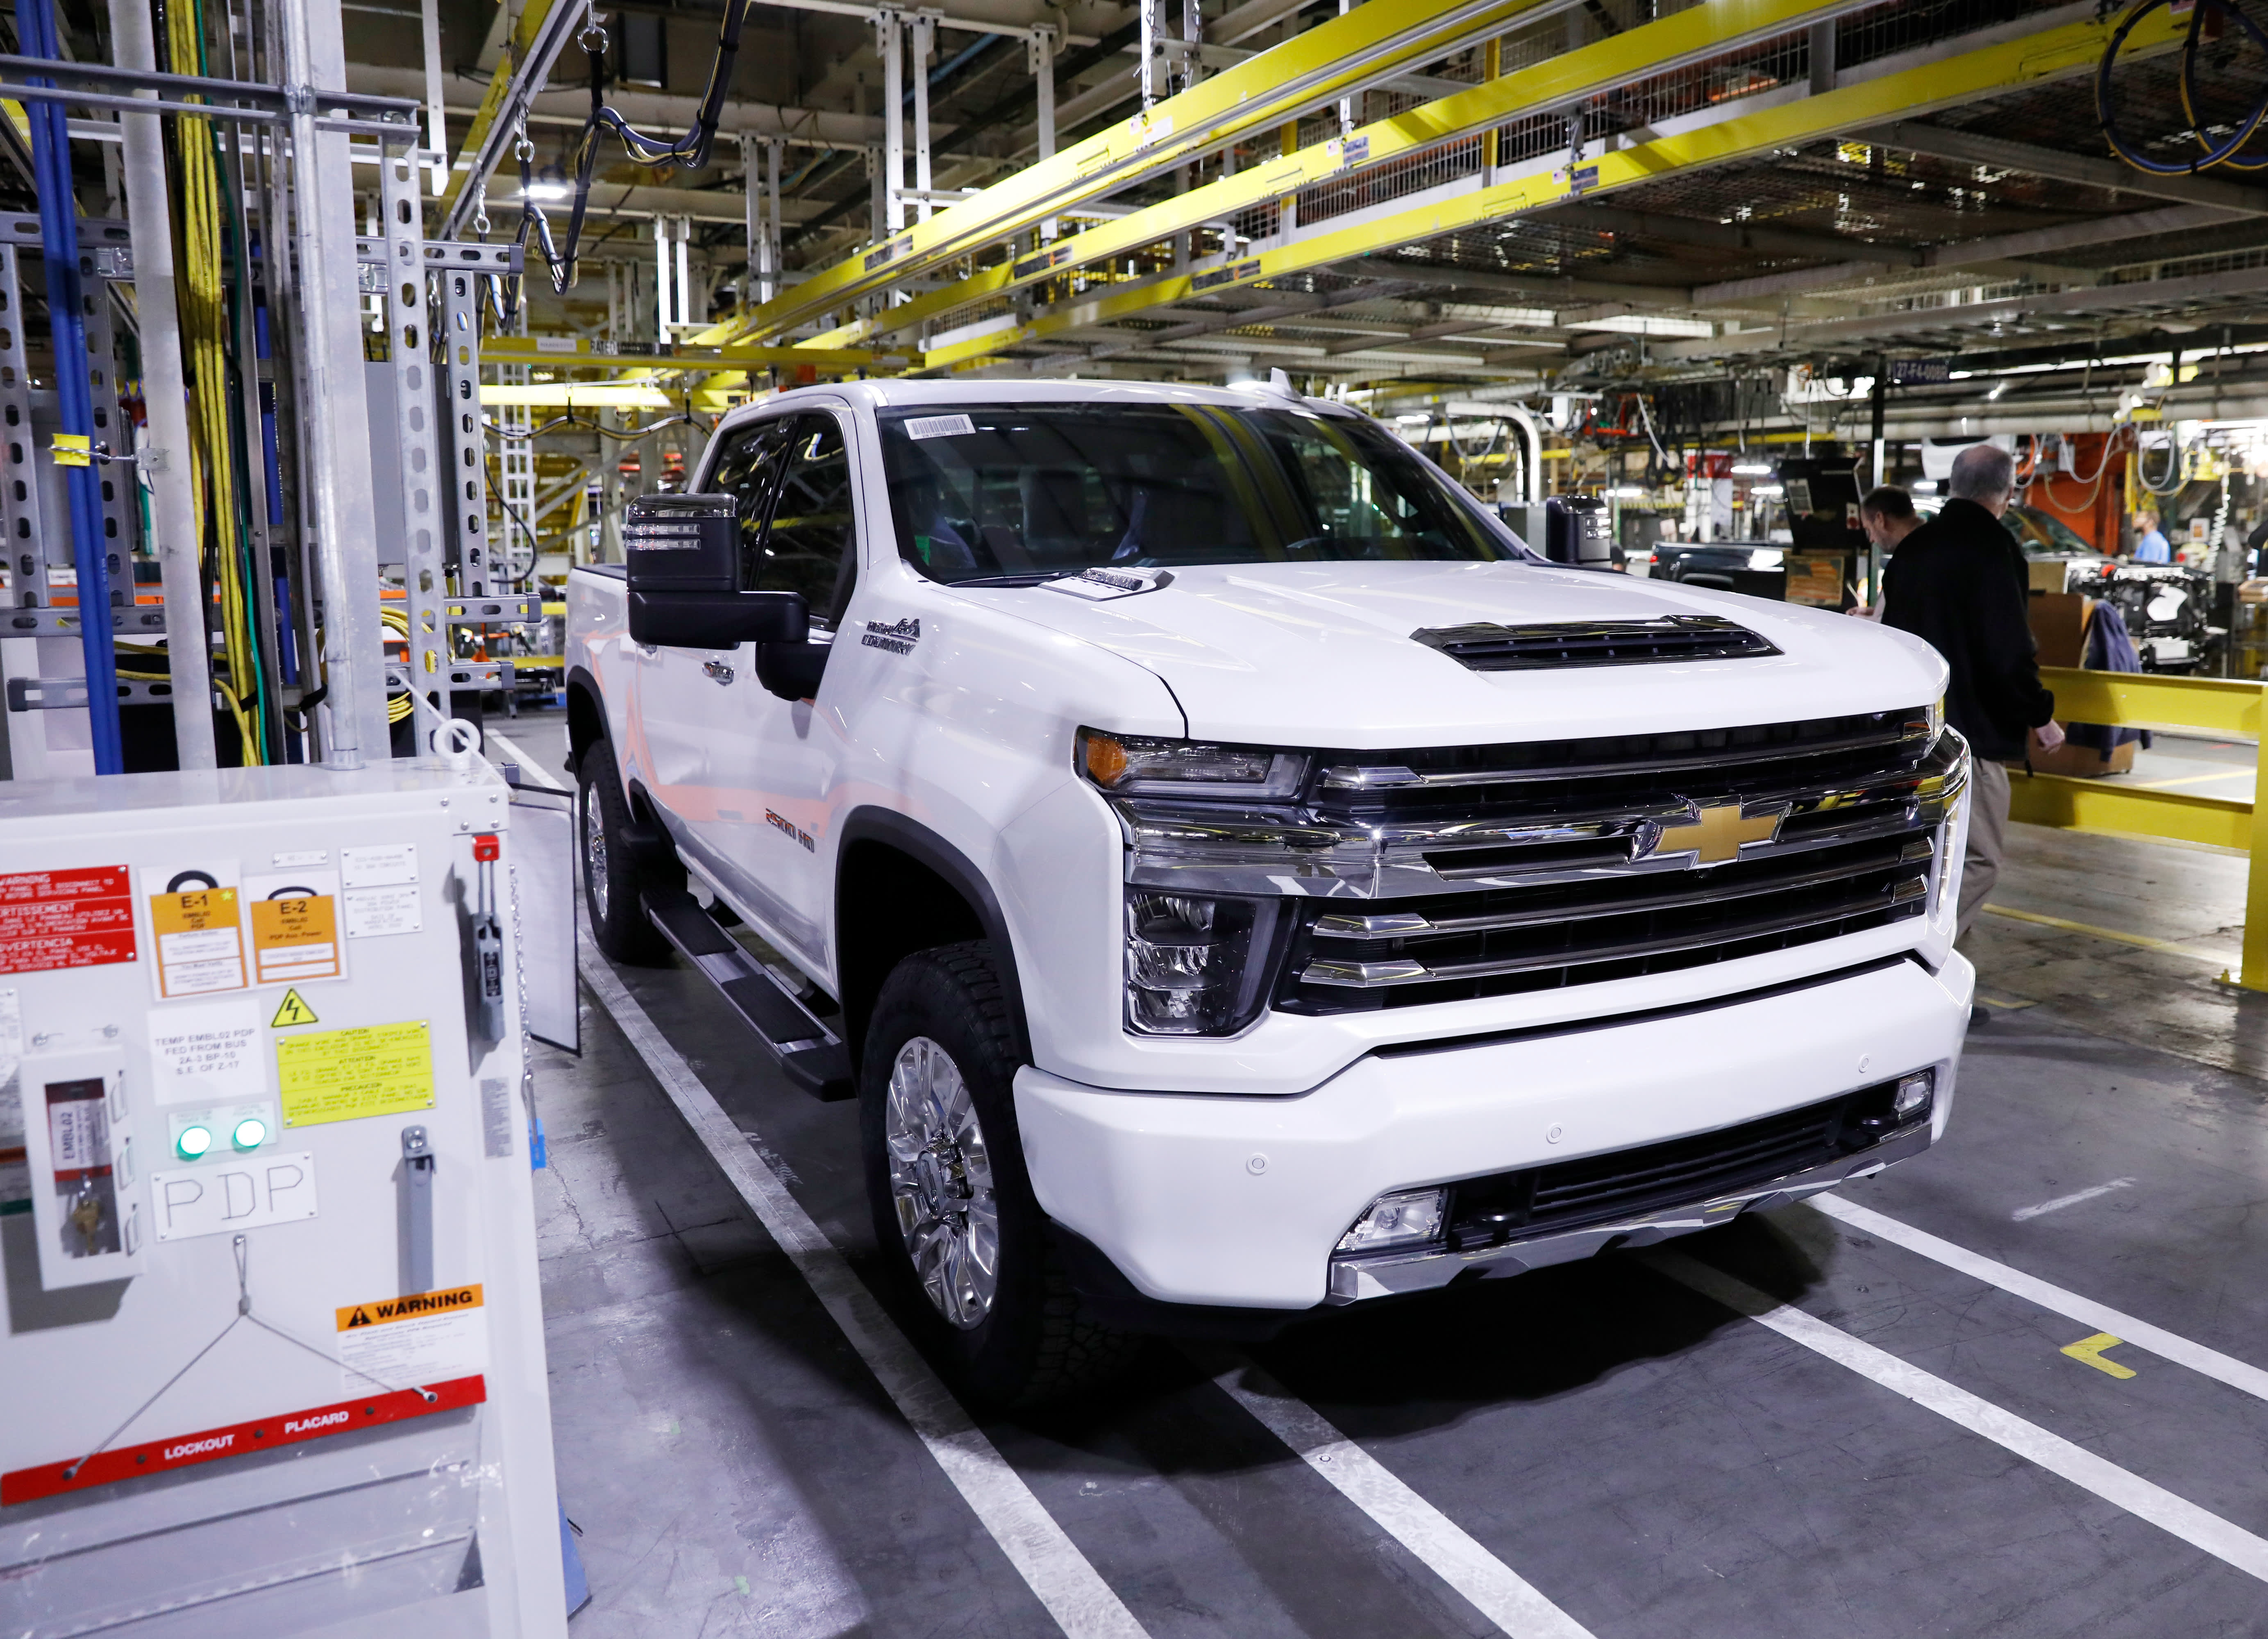 GM recalls over 3.4 million pickups and SUVs to fix brake issues